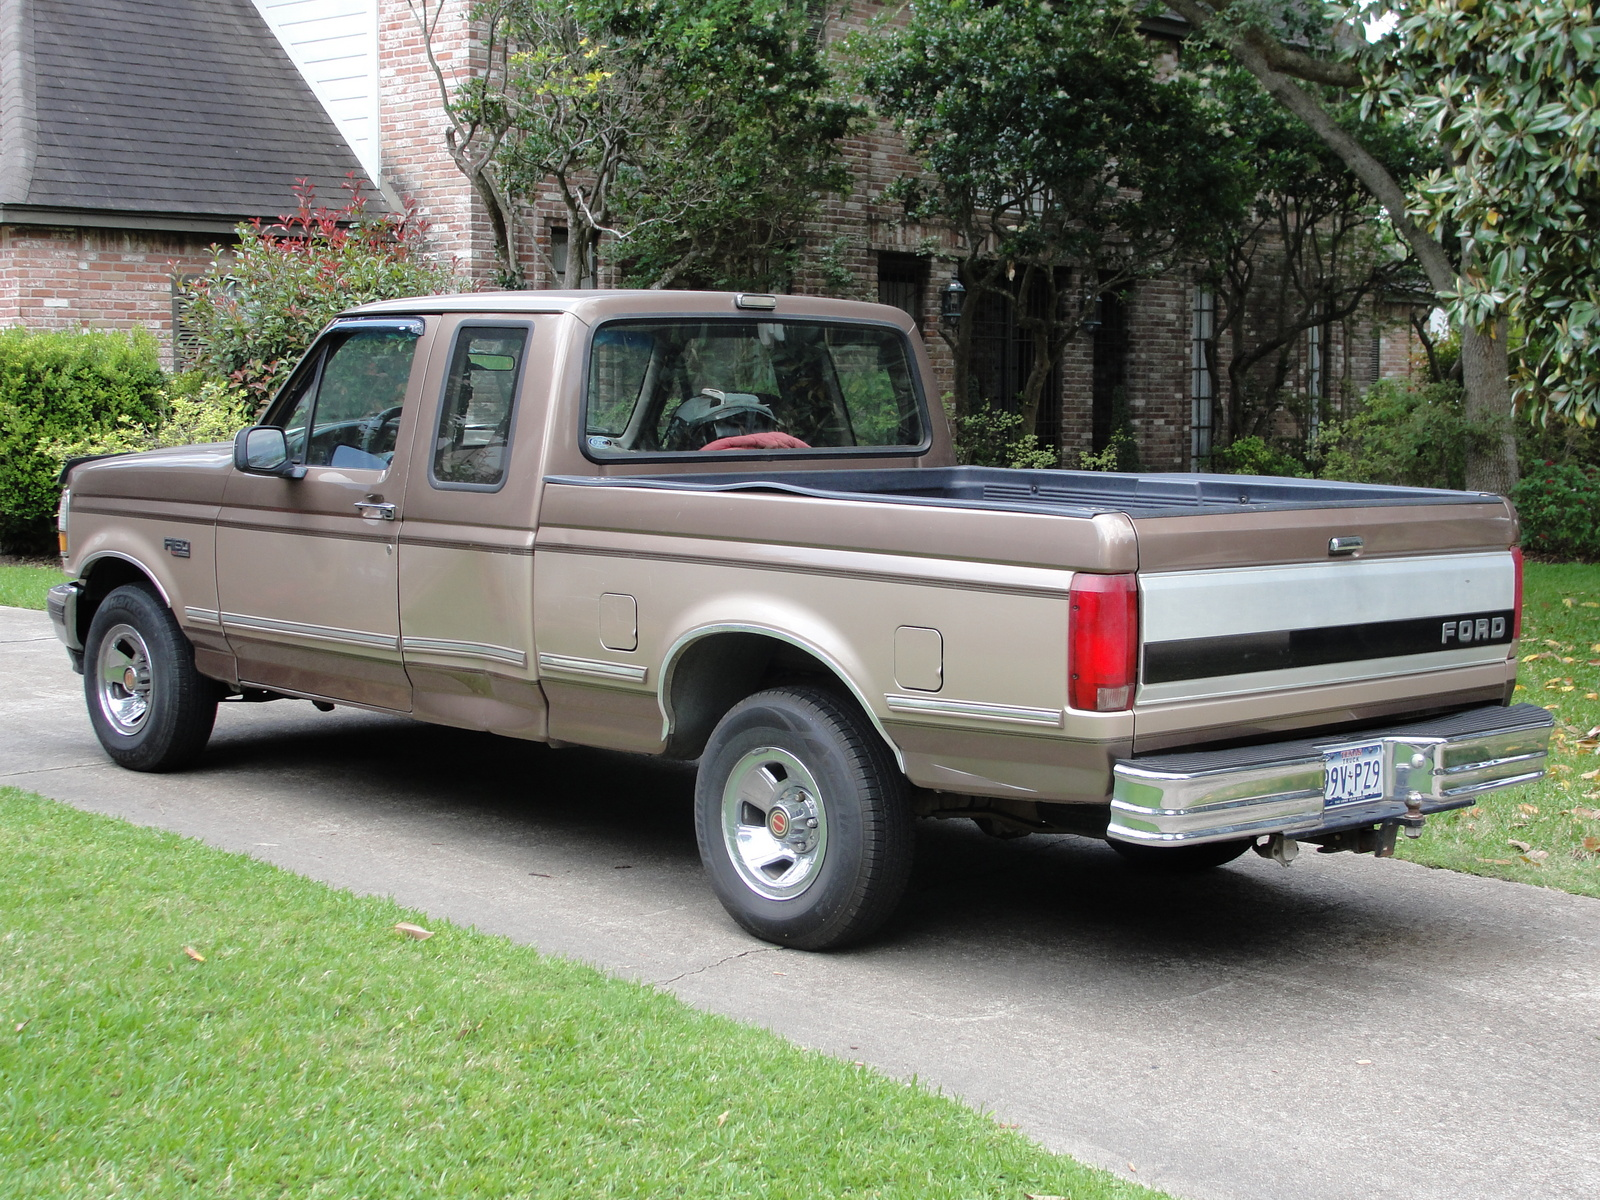 Ford F-150 1993 photo - 10